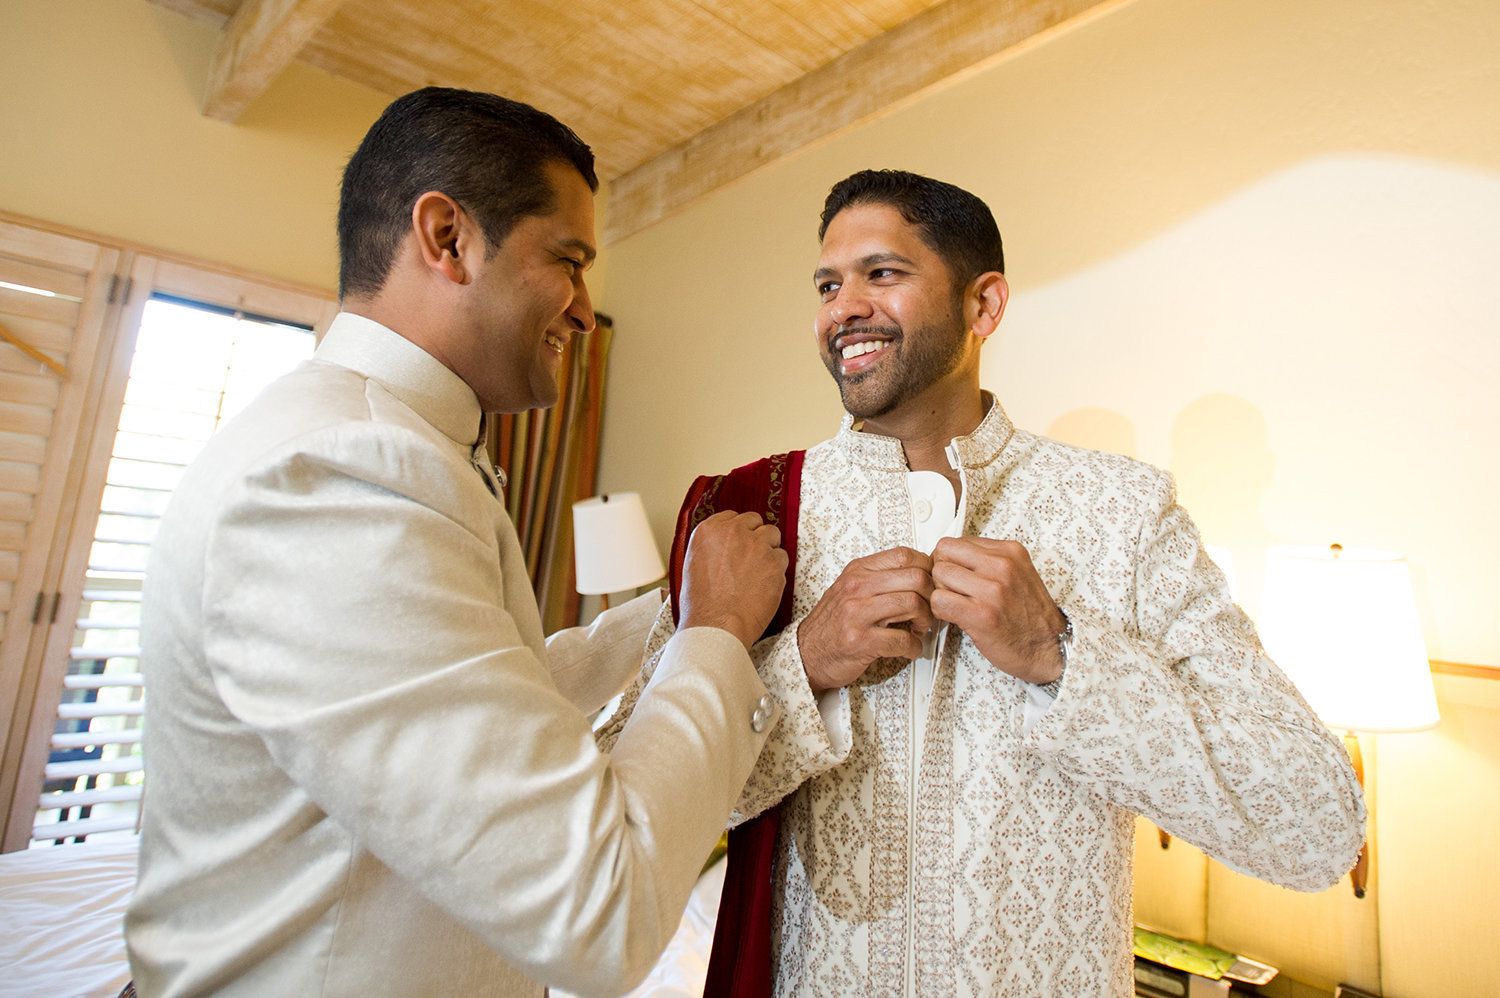 Groom getting help into his Sherwani before his Hindu wedding ceremony